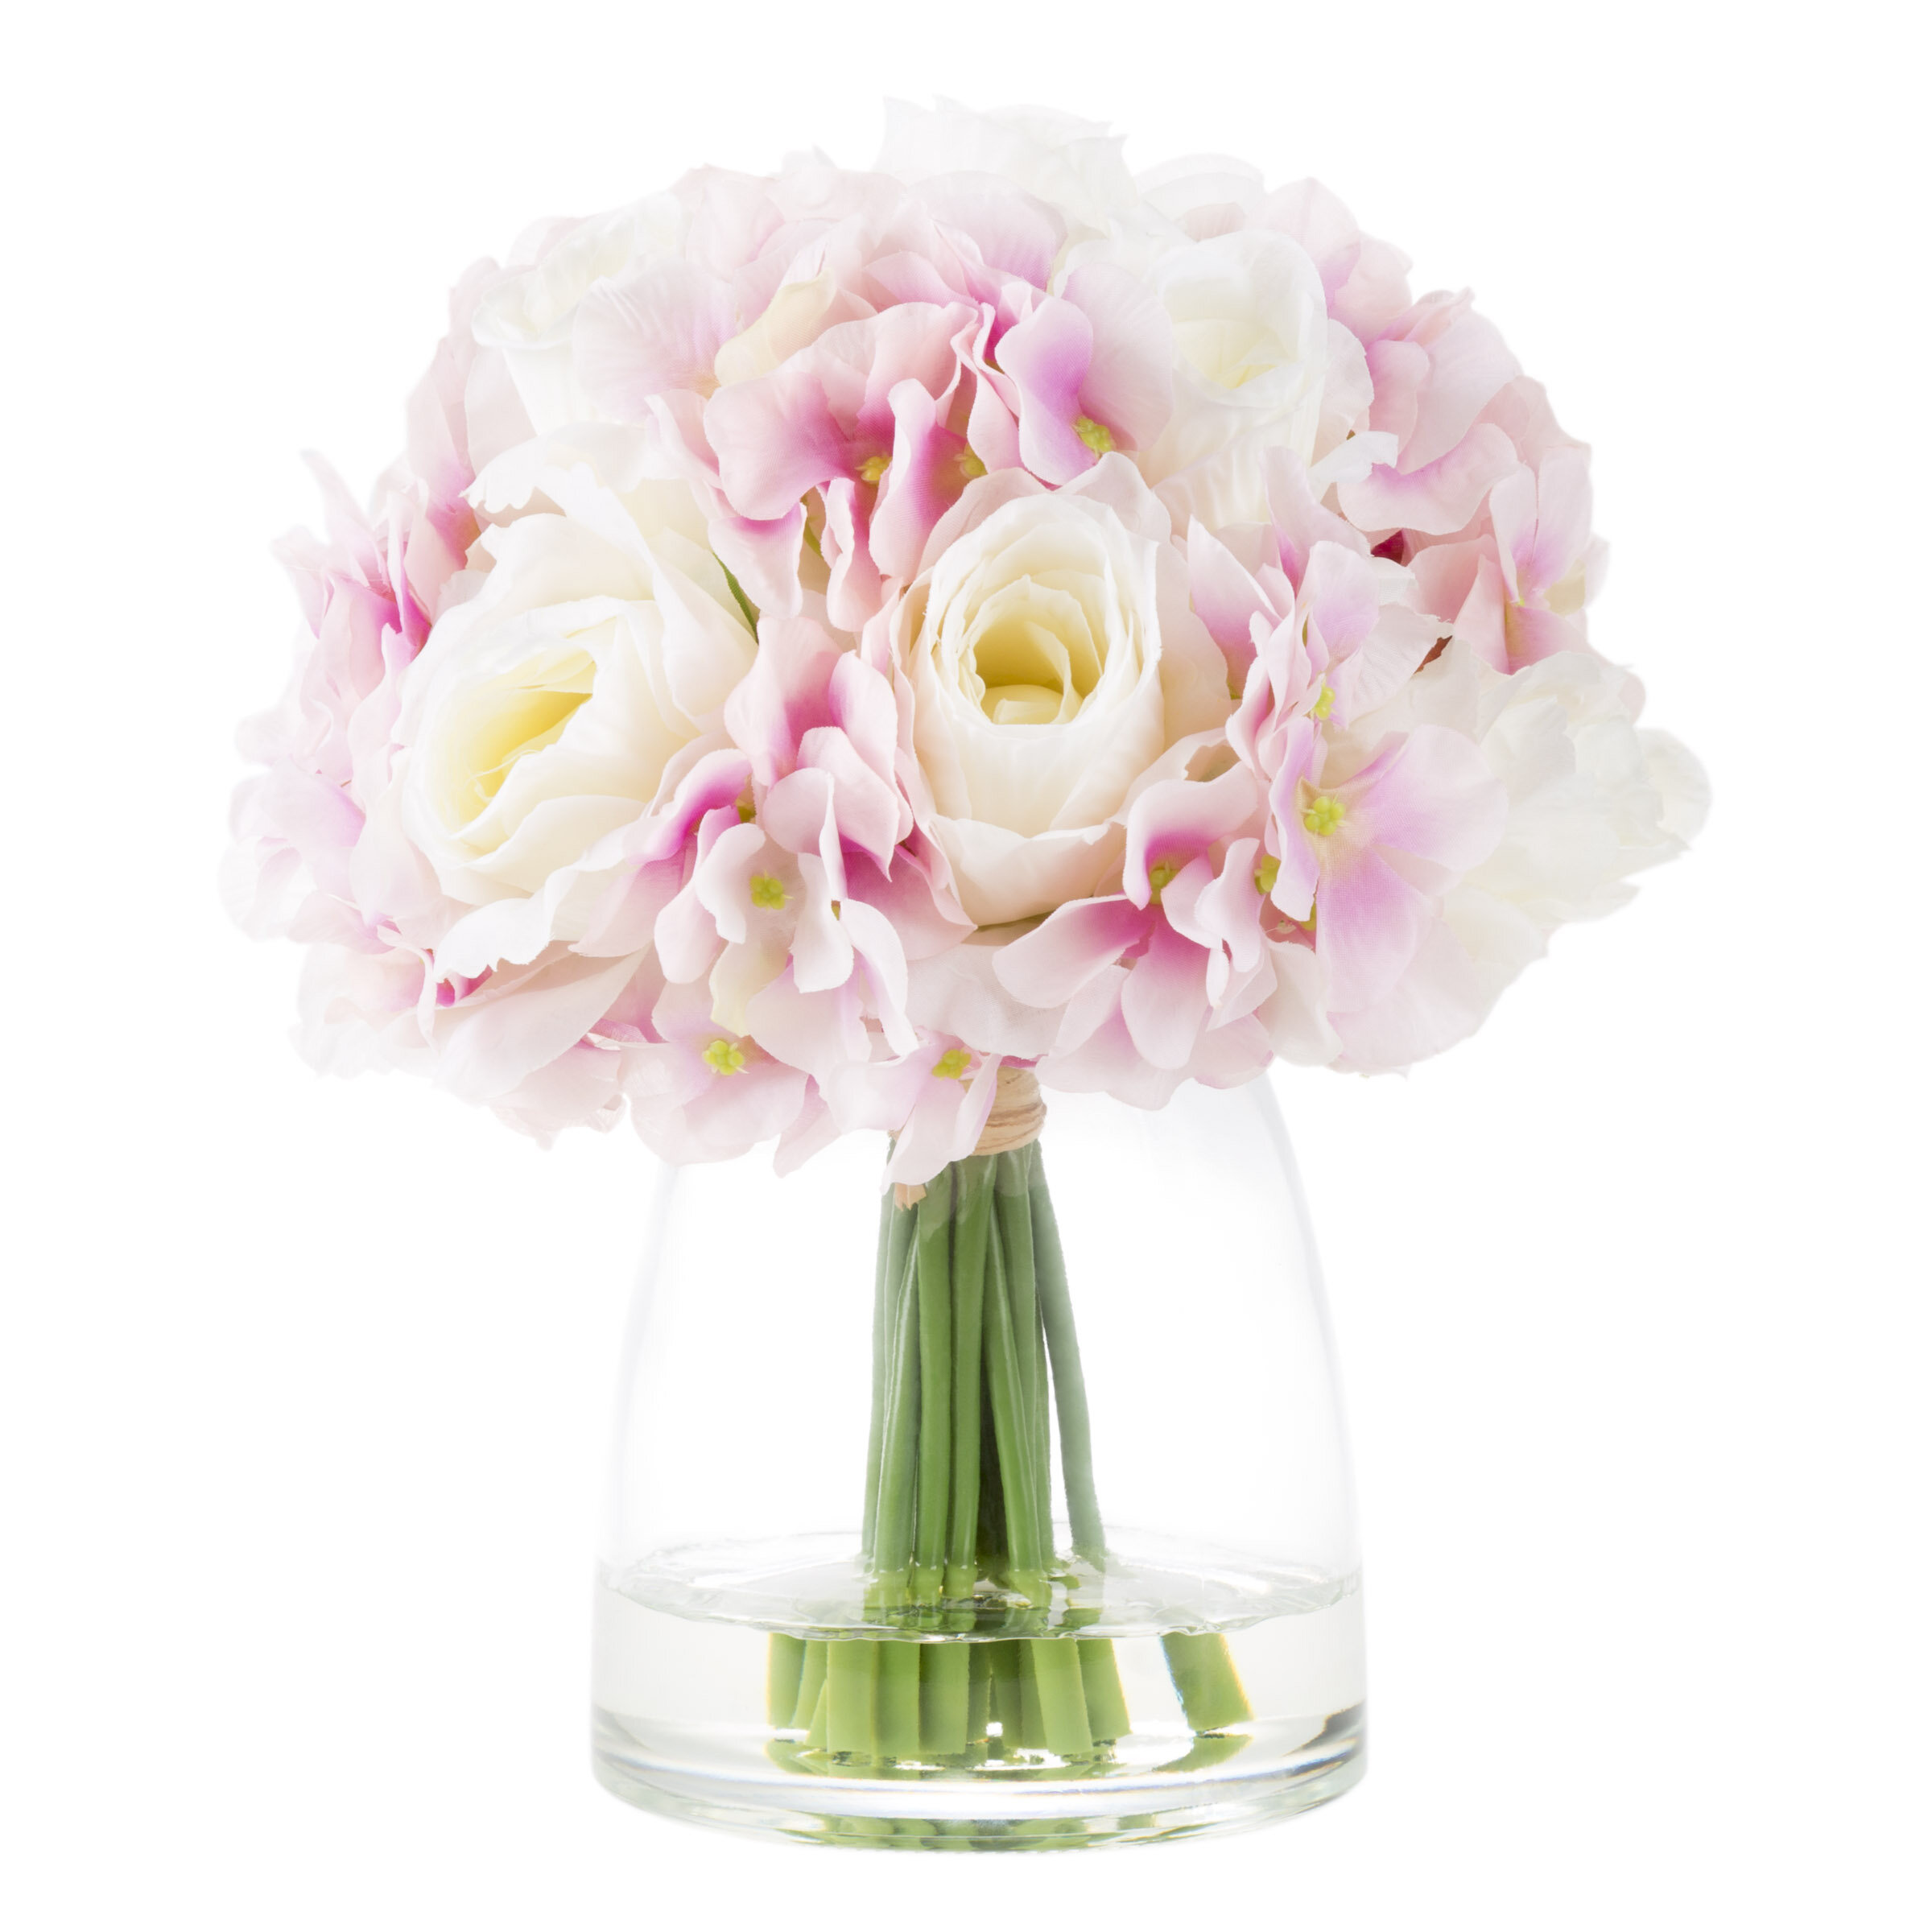 House Of Hampton Hydrangea And Rose Floral Arrangement In Glass Vase